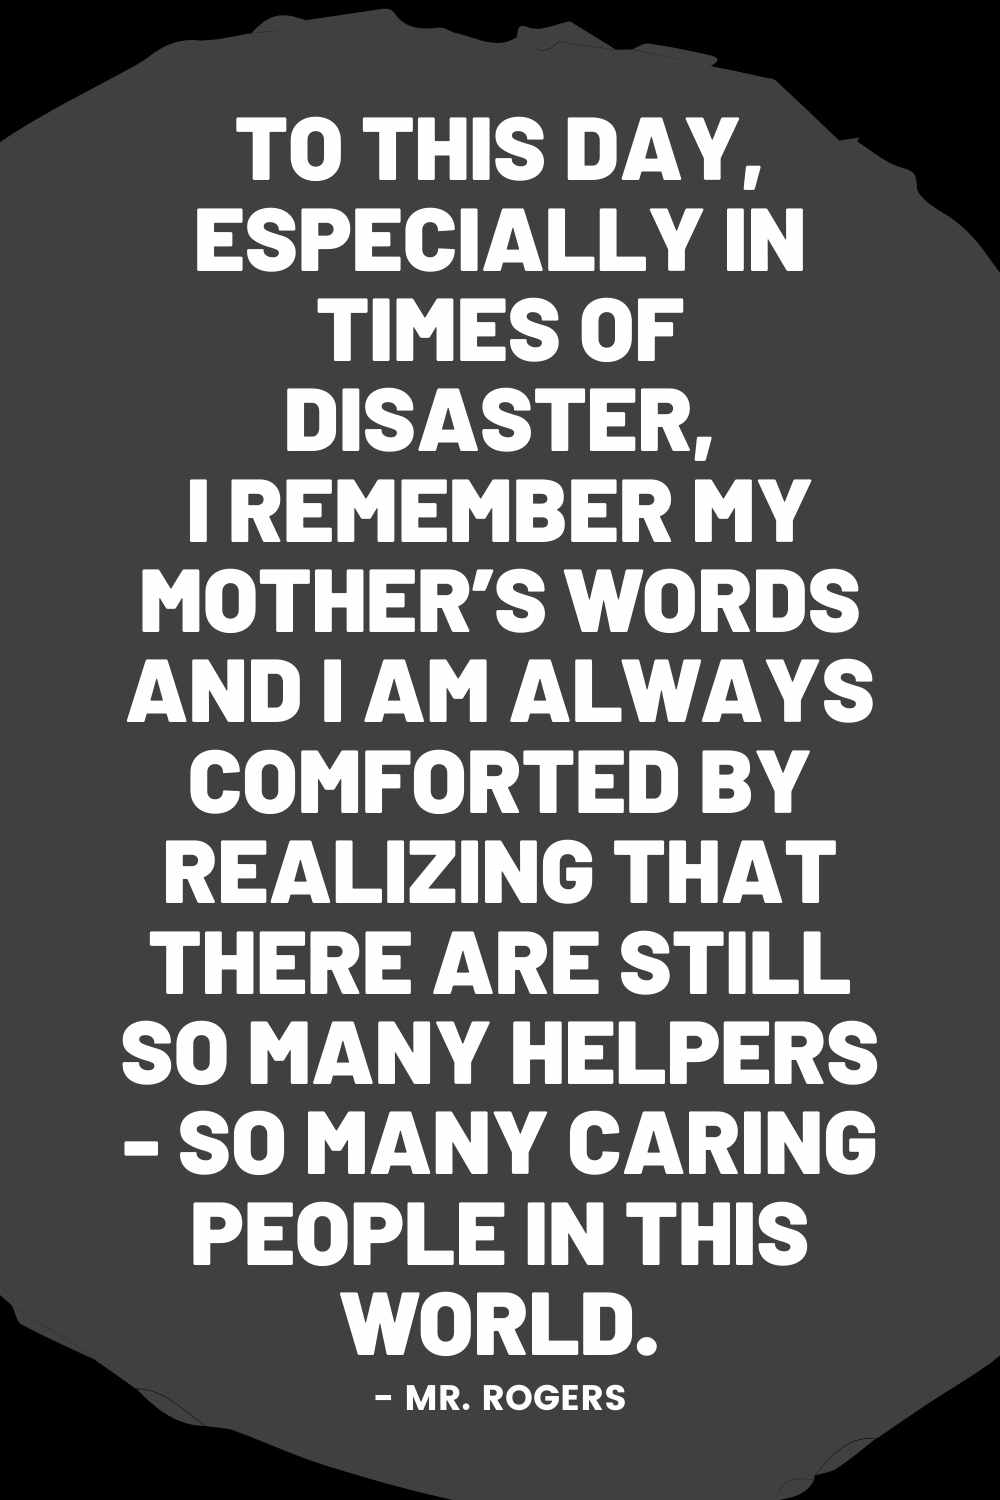 To this day, especially in times of disaster, I remember my mother's words and I am always comforted by realizing that there are still so many helpers - so many caring people in this world.  mr rogers tragedy quote